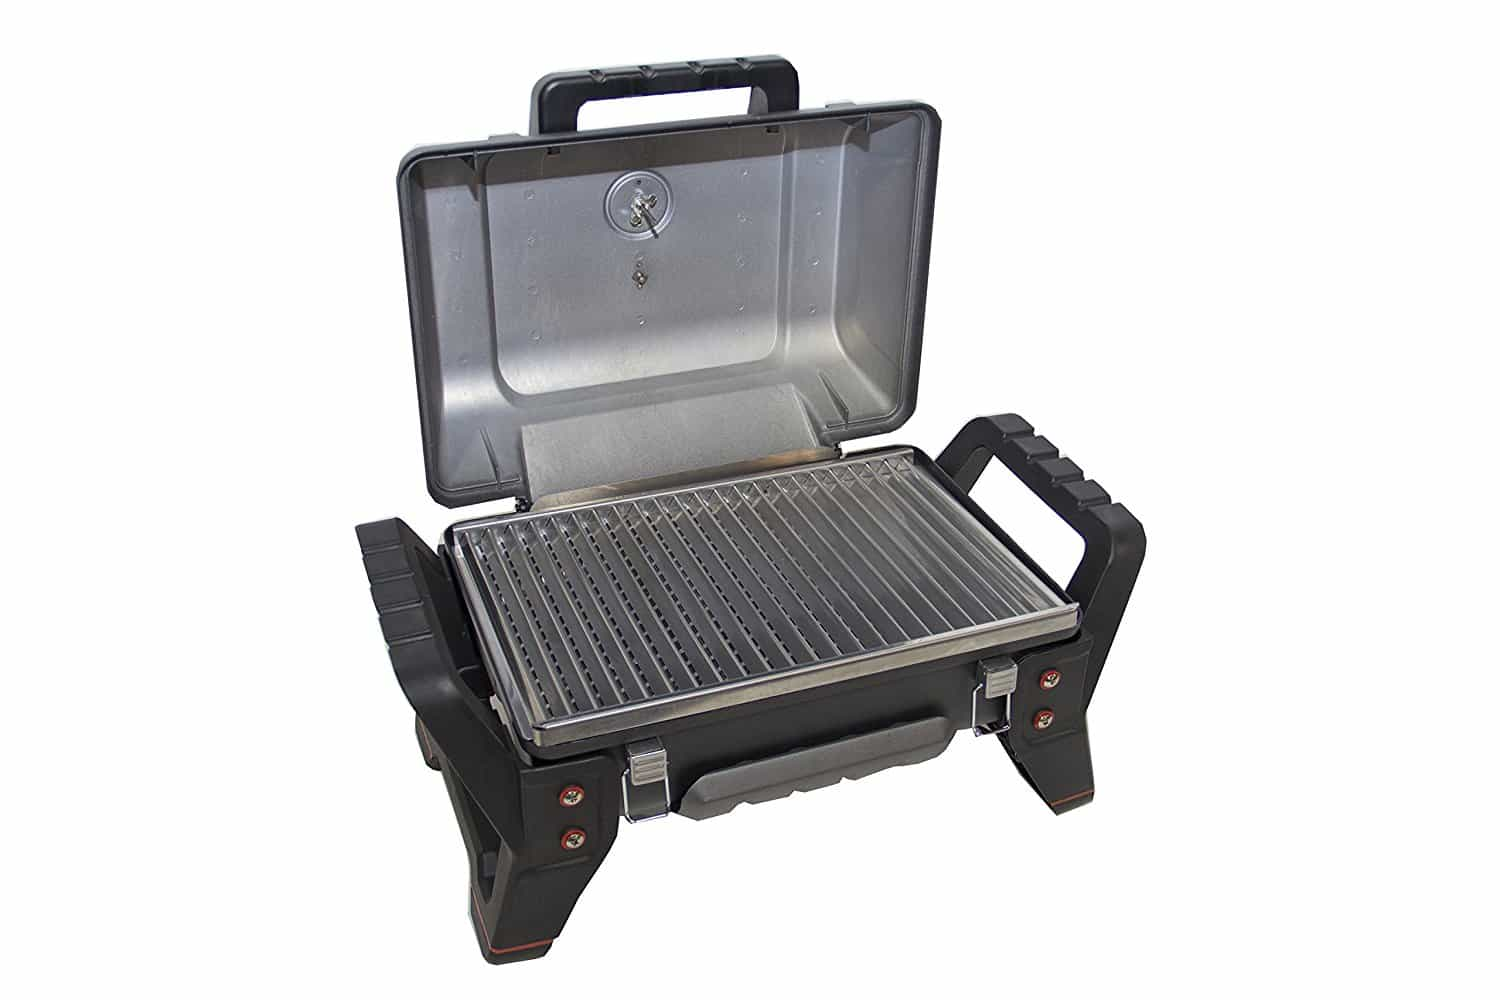 char-broil advantage four-burner grill